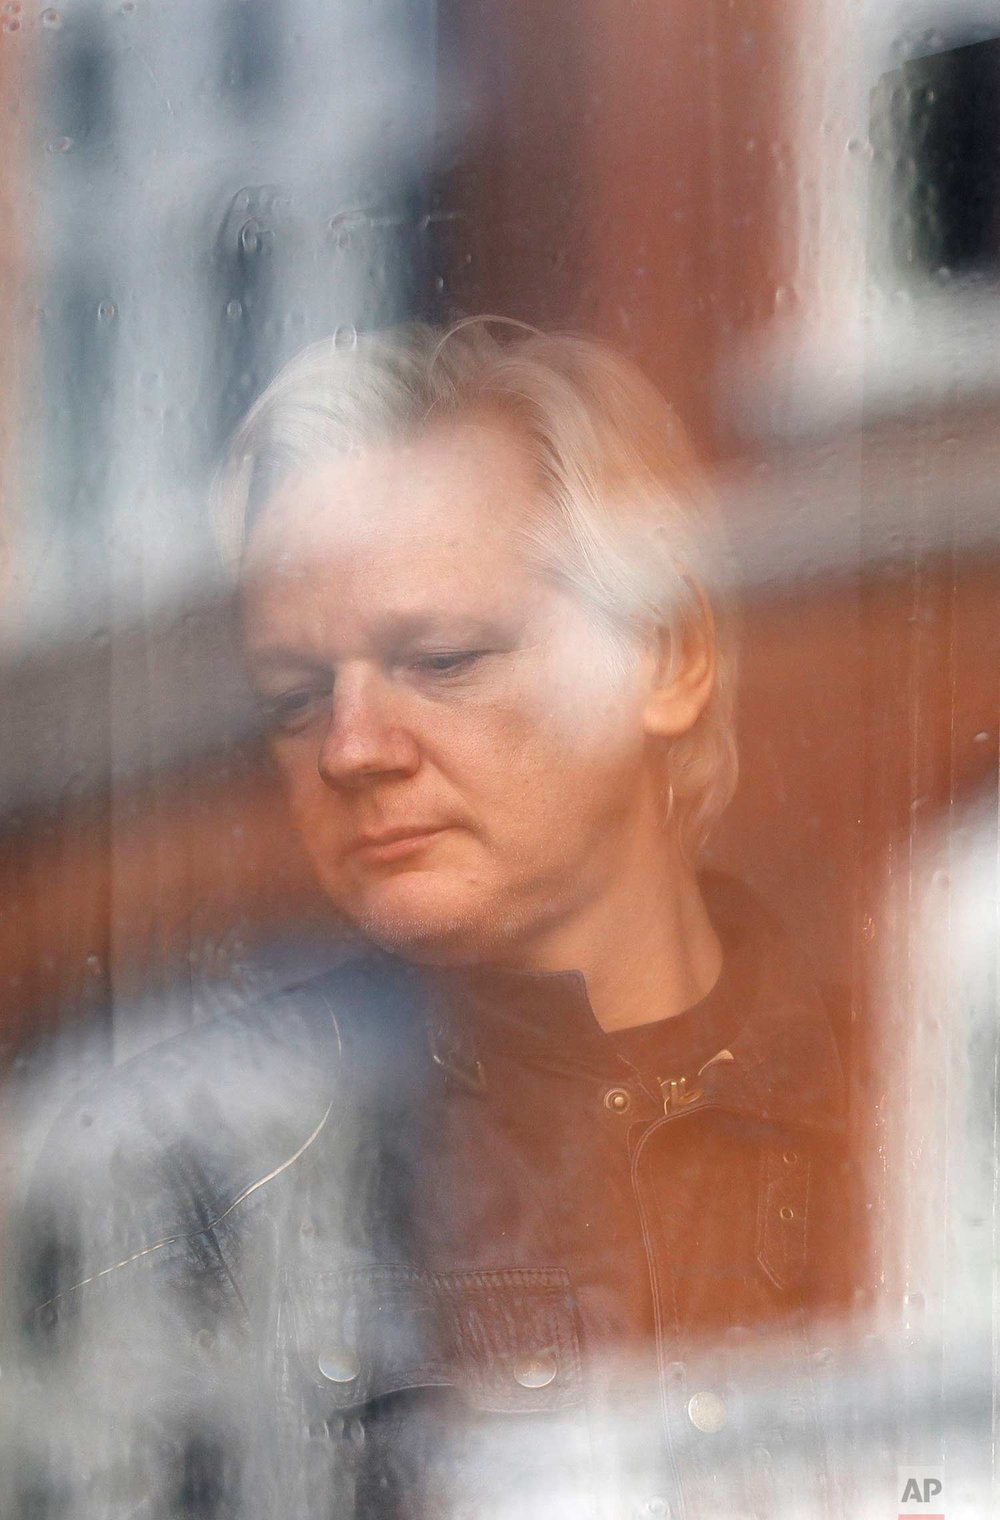 In this Friday May 19, 2017 photo, Julian Assange looks out the window from the Ecuadorian embassy in London. Sweden's top prosecutor says she is dropping an investigation into a rape claim against WikiLeaks founder Julian Assange after almost seven years. Assange took refuge in Ecuador's embassy in London in 2012 to escape extradition to Sweden to answer questions about sex-crime allegations from two women. (AP Photo/Frank Augstein)